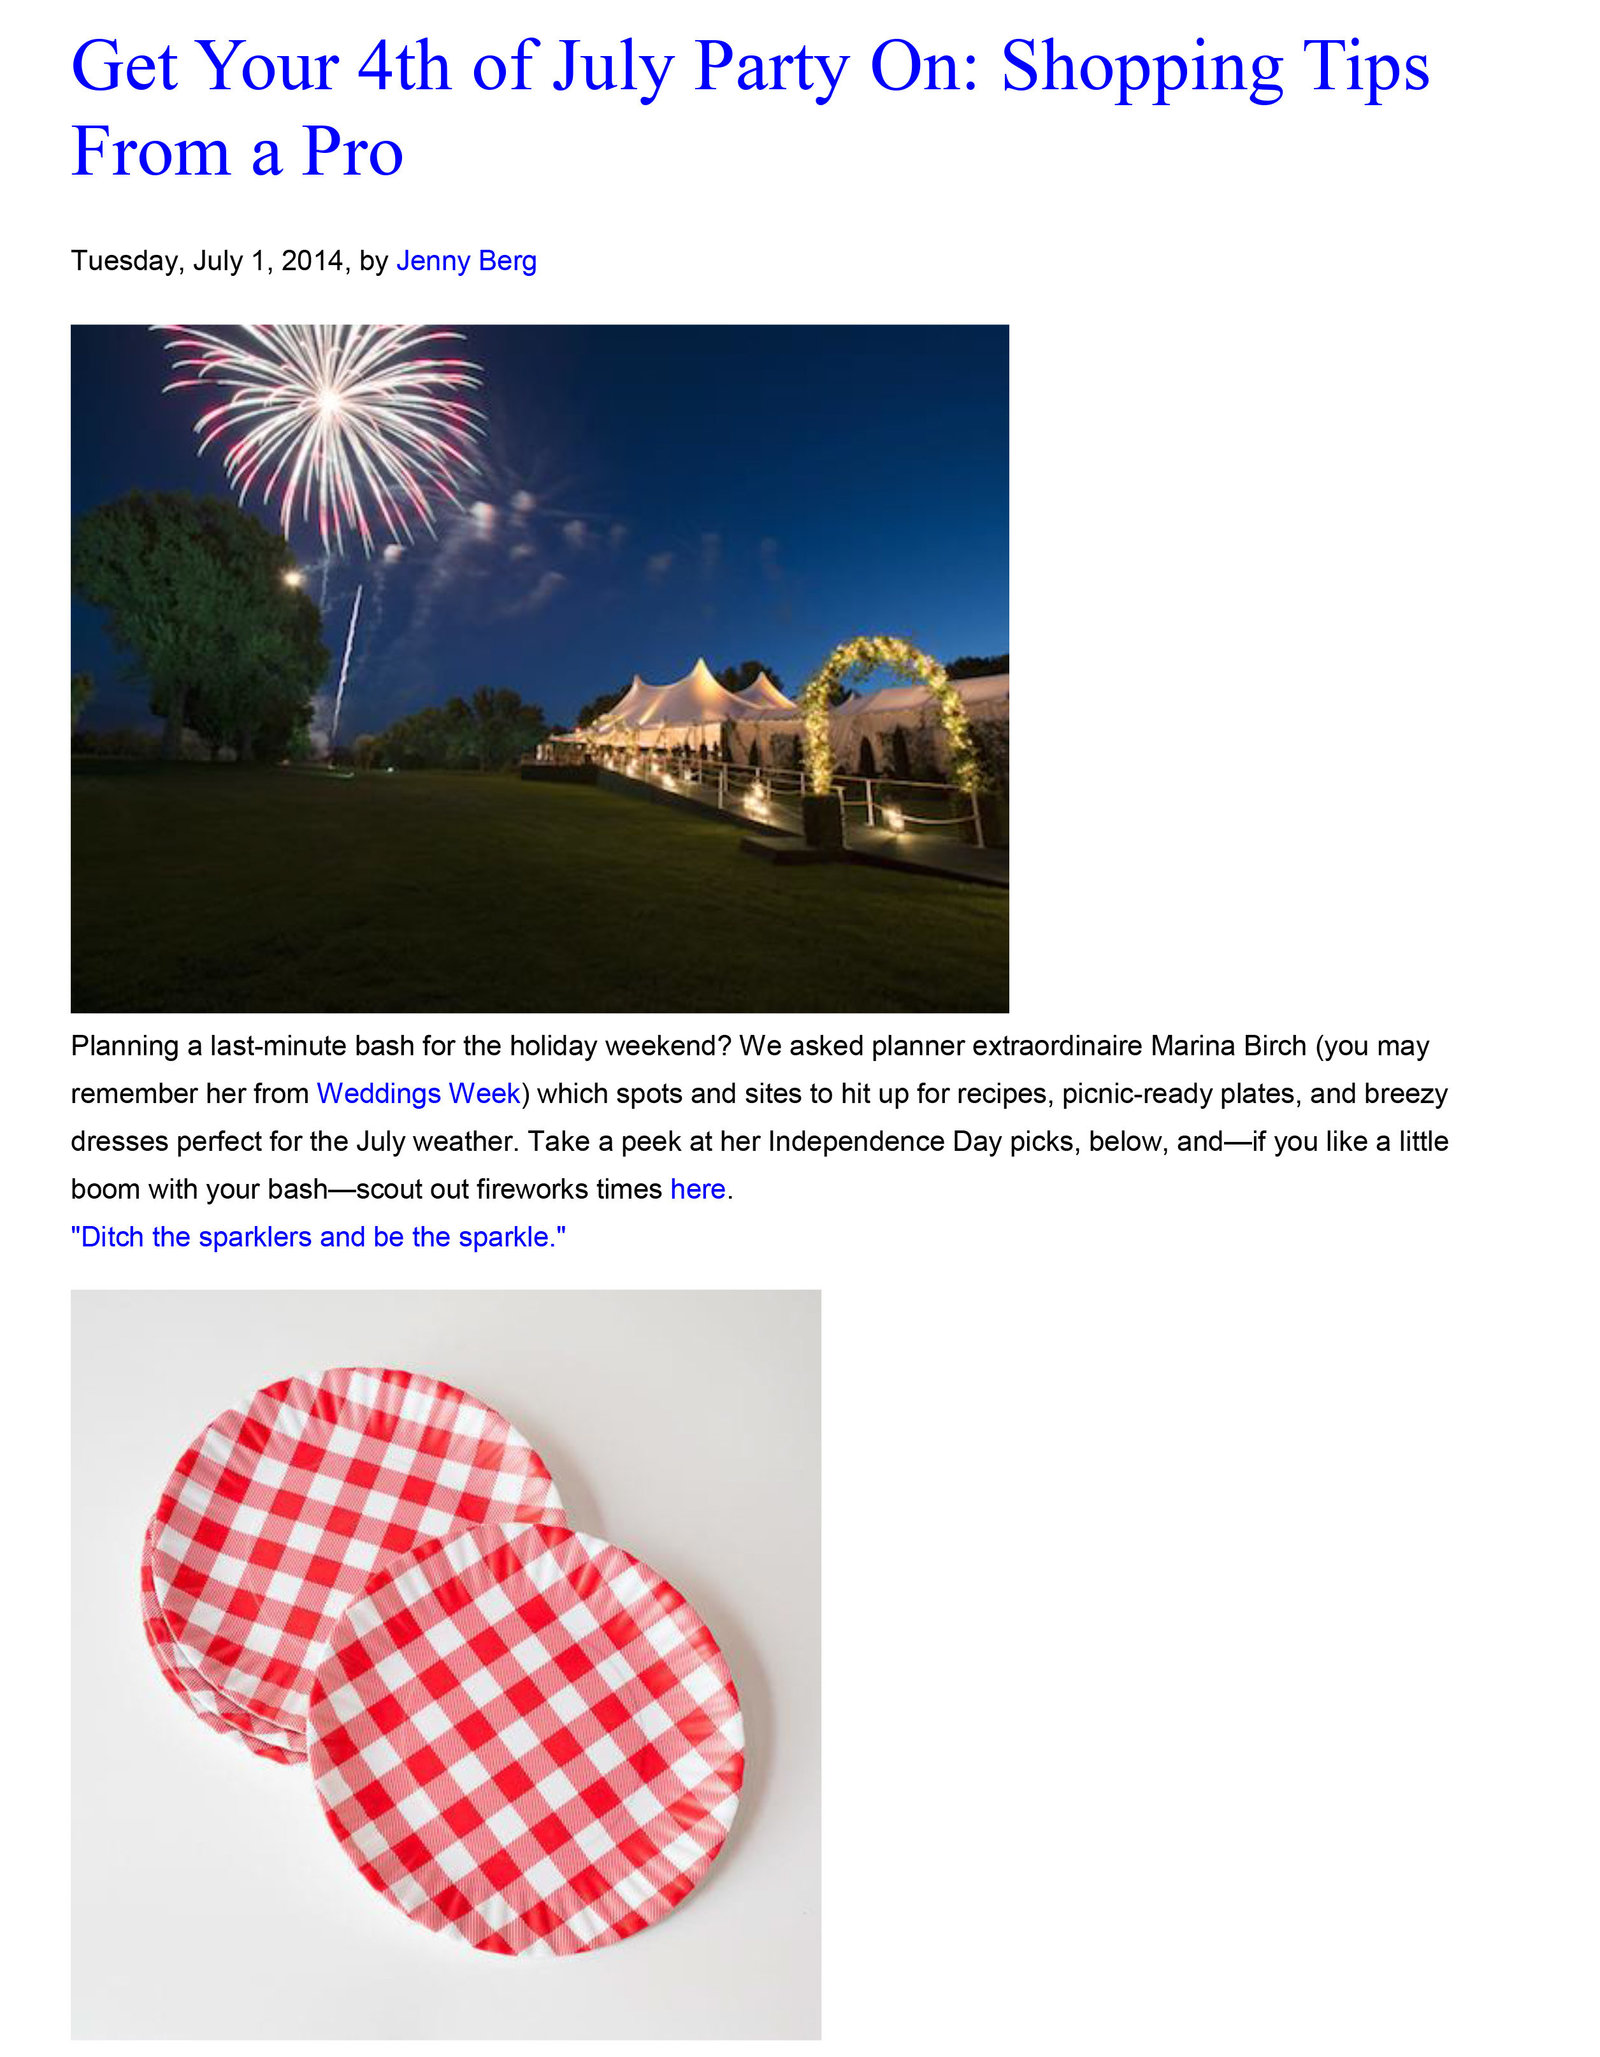 7 - Get Your 4th of July Party On-Article-1